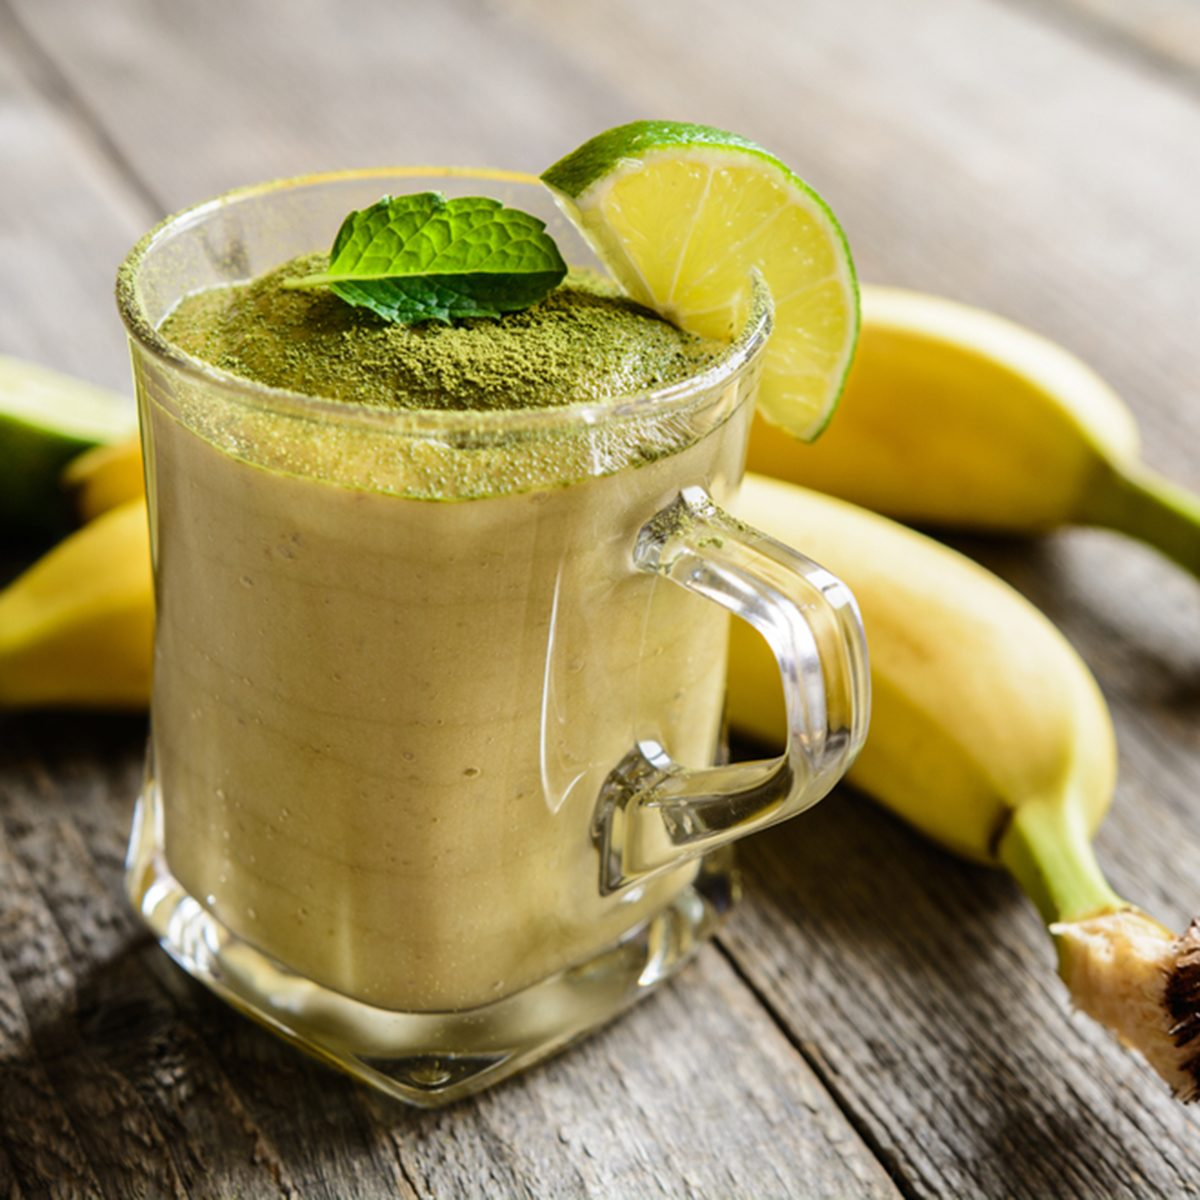 Healthy smoothie with banana and Matcha tea in a glass jar